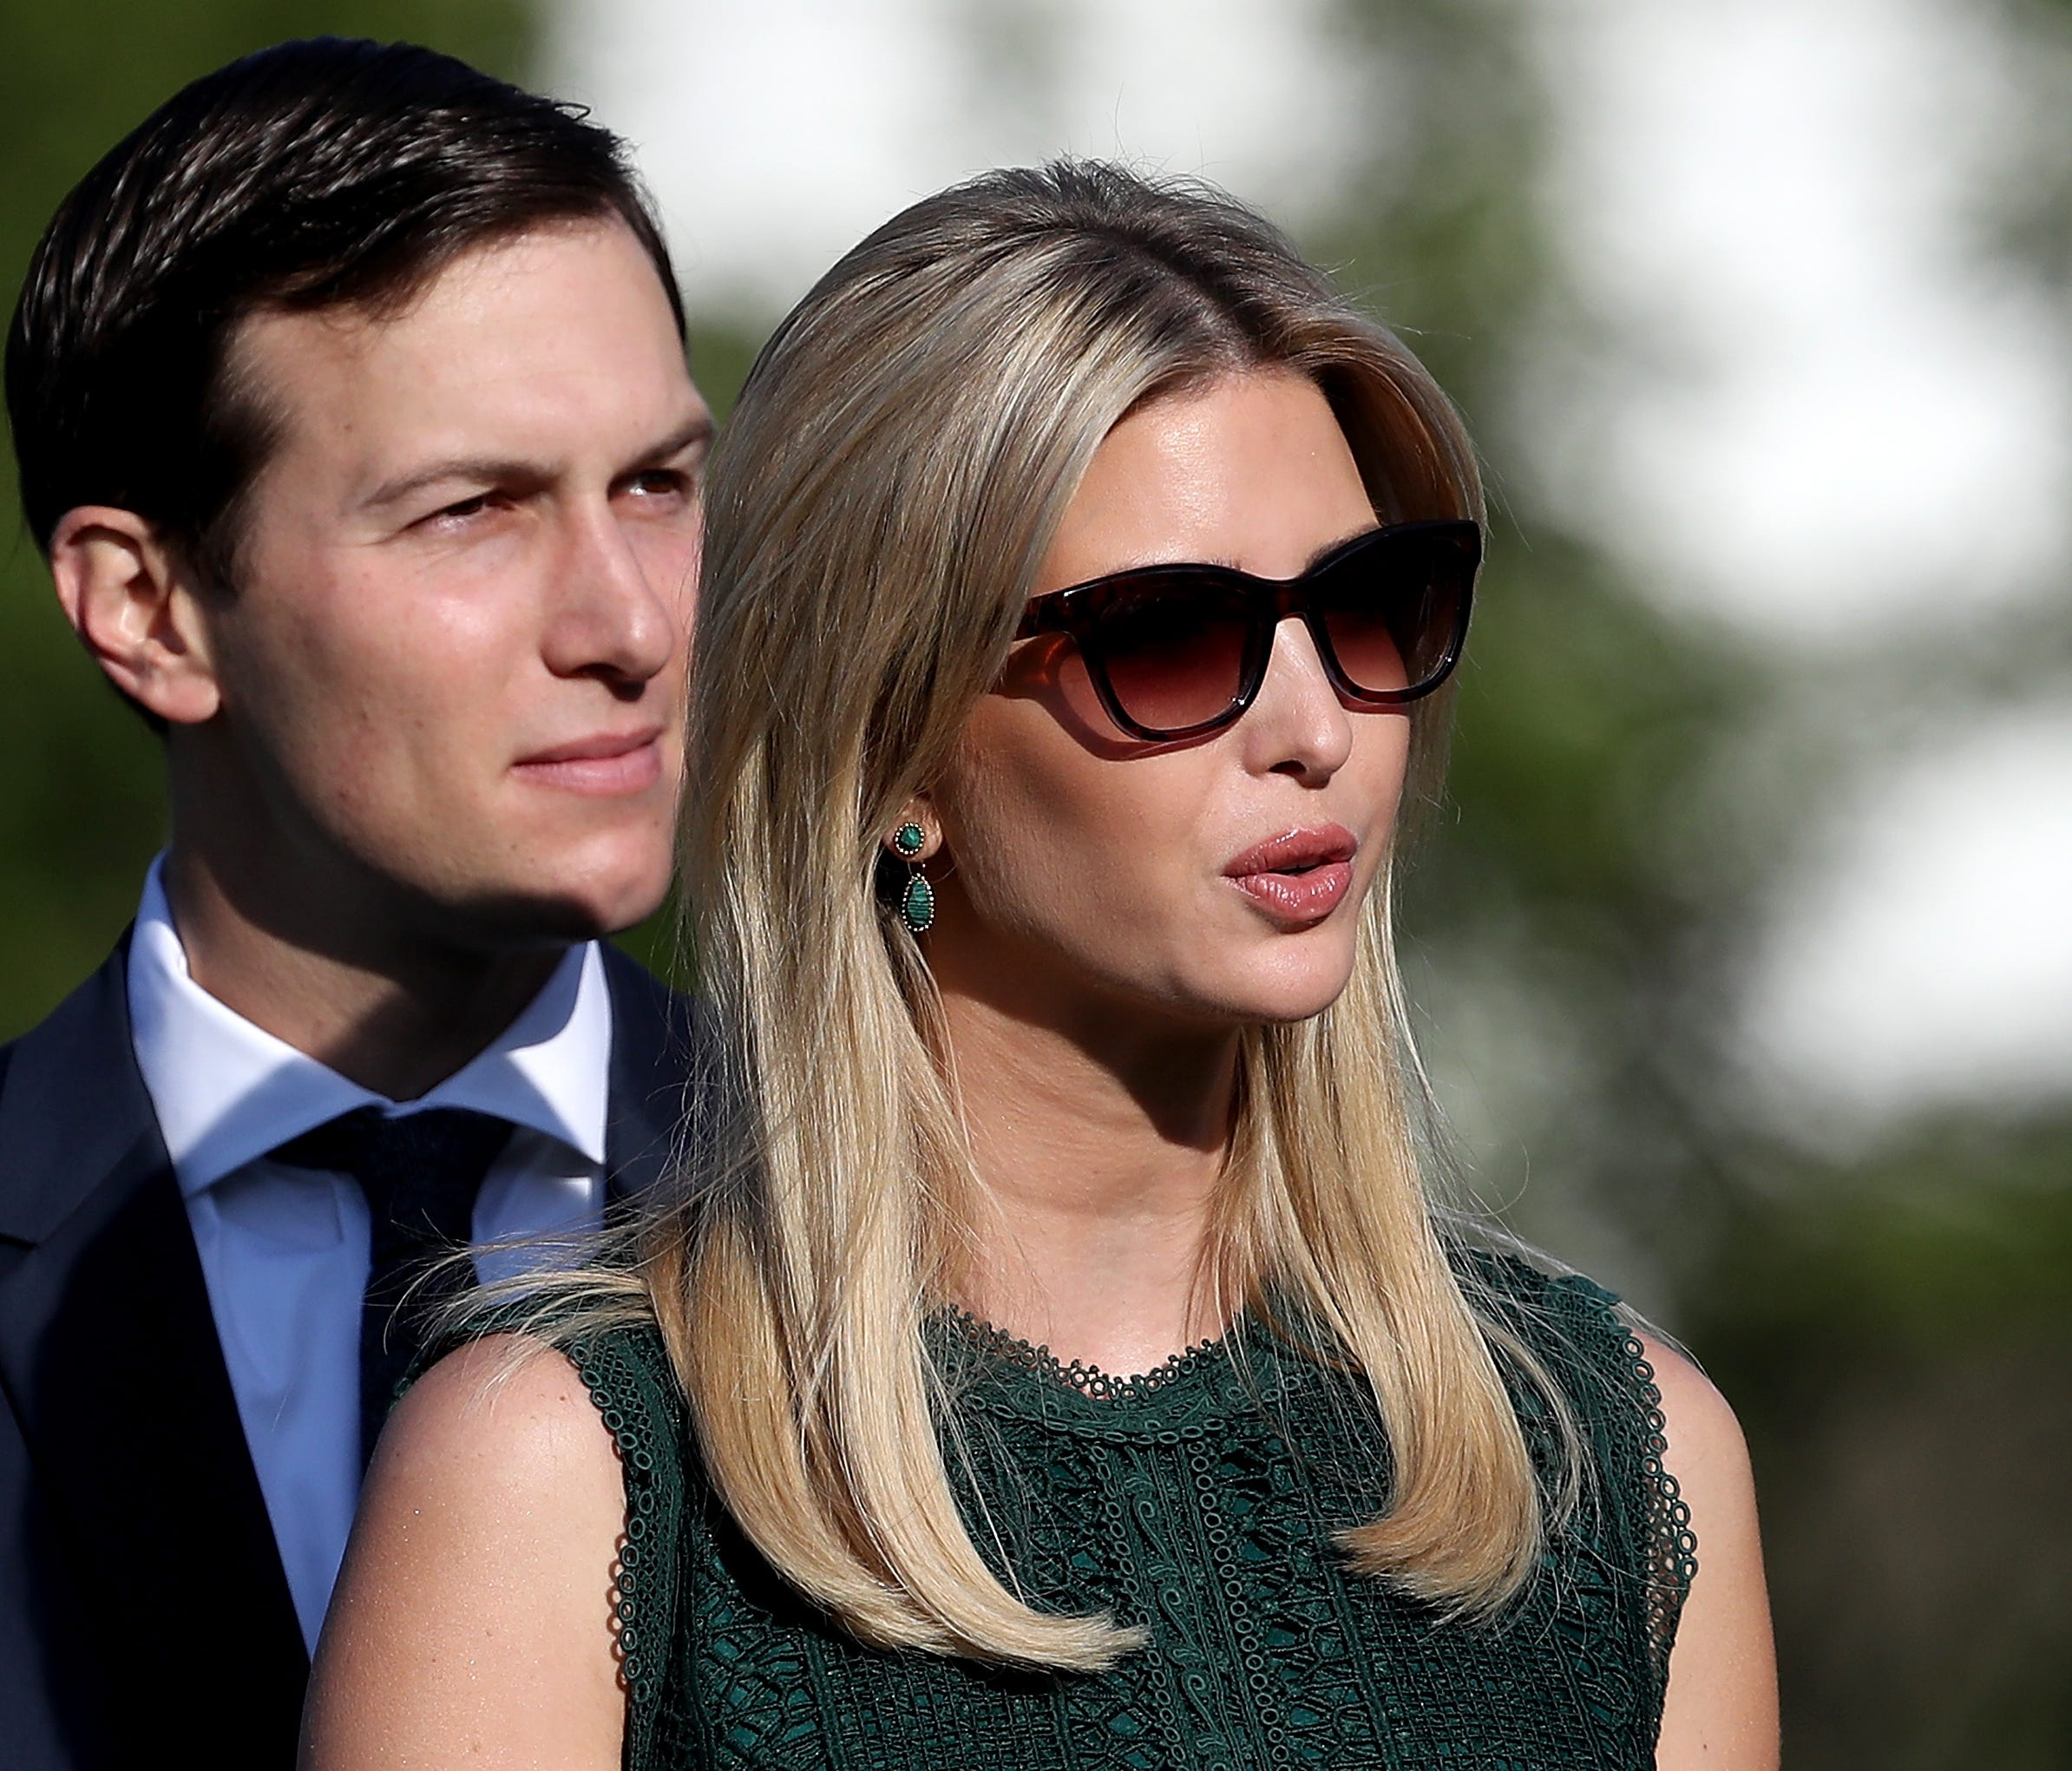 Ivanka Trump and Jared Kushner arrive for a ceremony on the South Lawn of the White House last September.